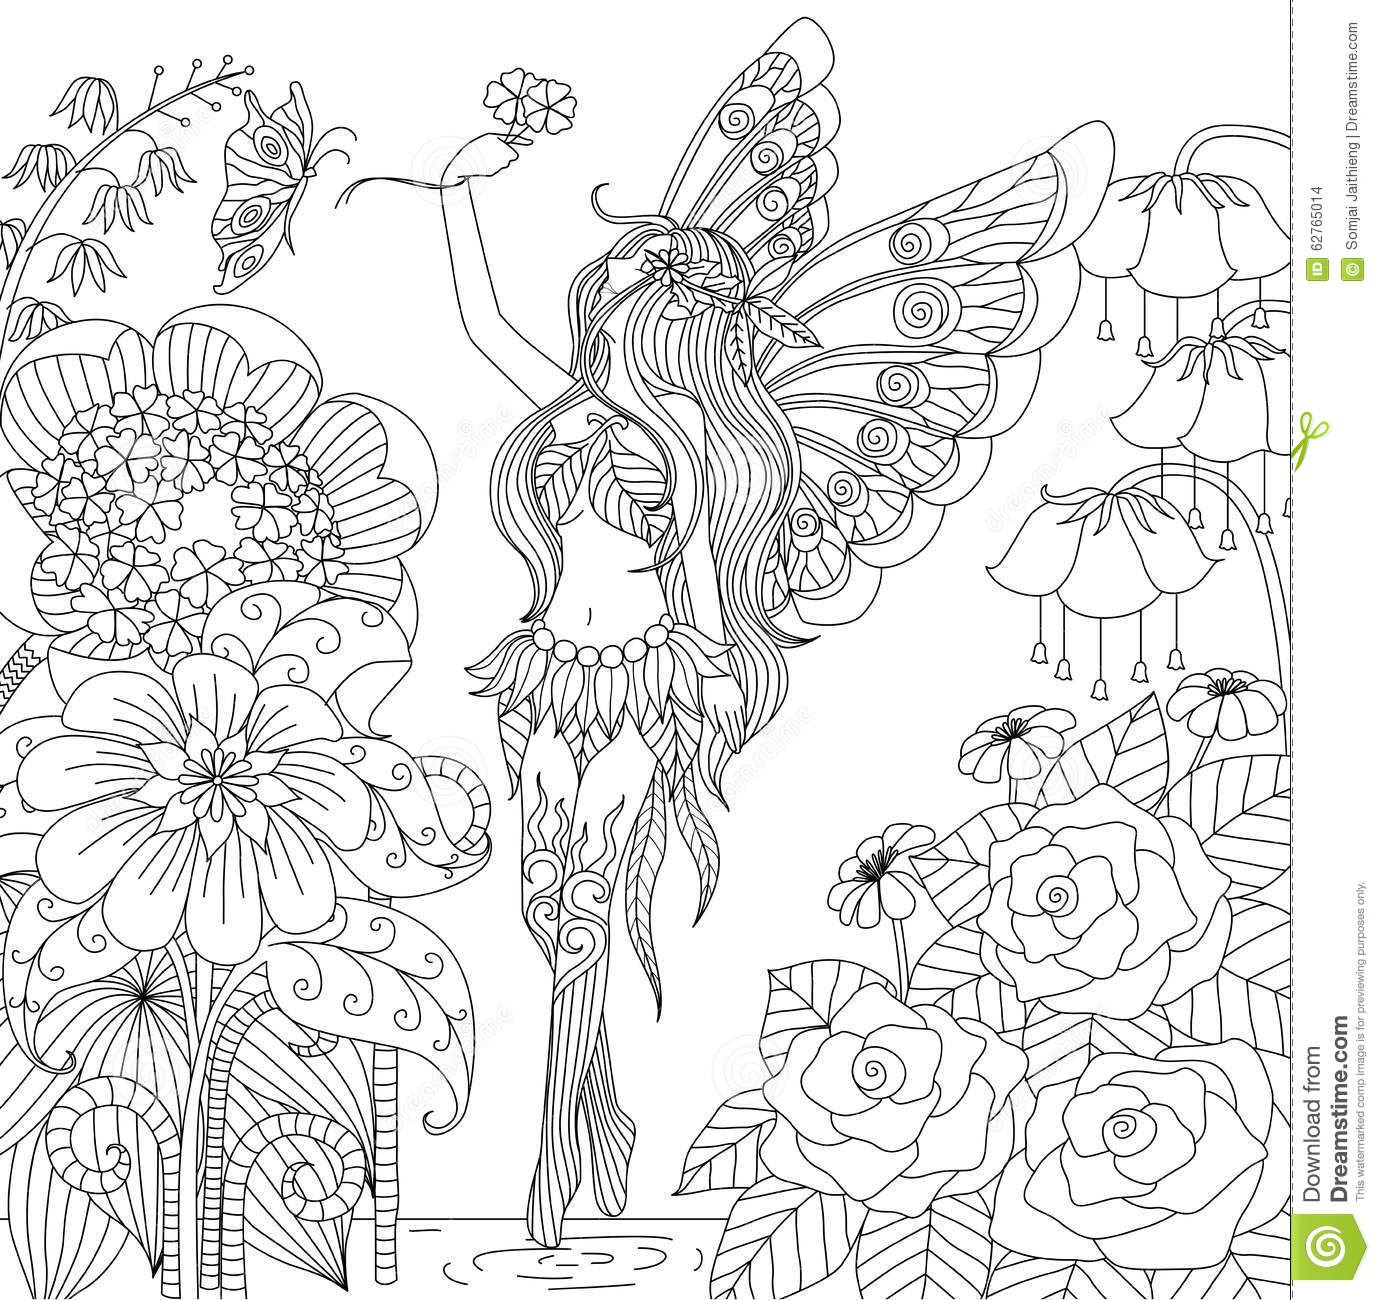 Coloriage Animaux Feeriques.Coloriage Anti Stress Feerique